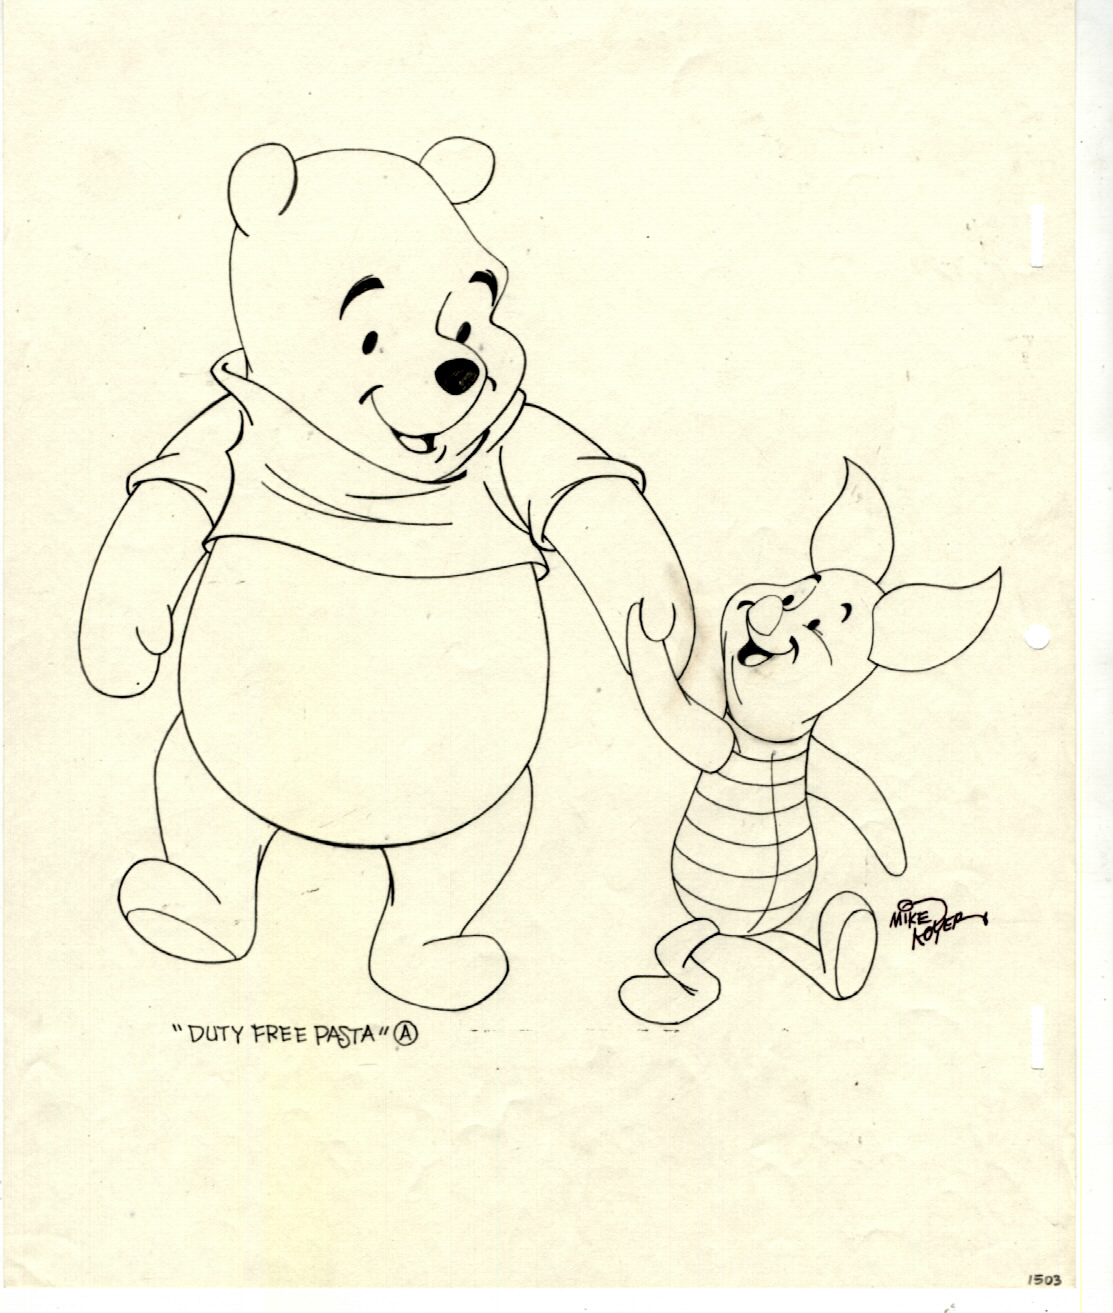 Pooh Bear Drawing at GetDrawings.com | Free for personal use Pooh ...